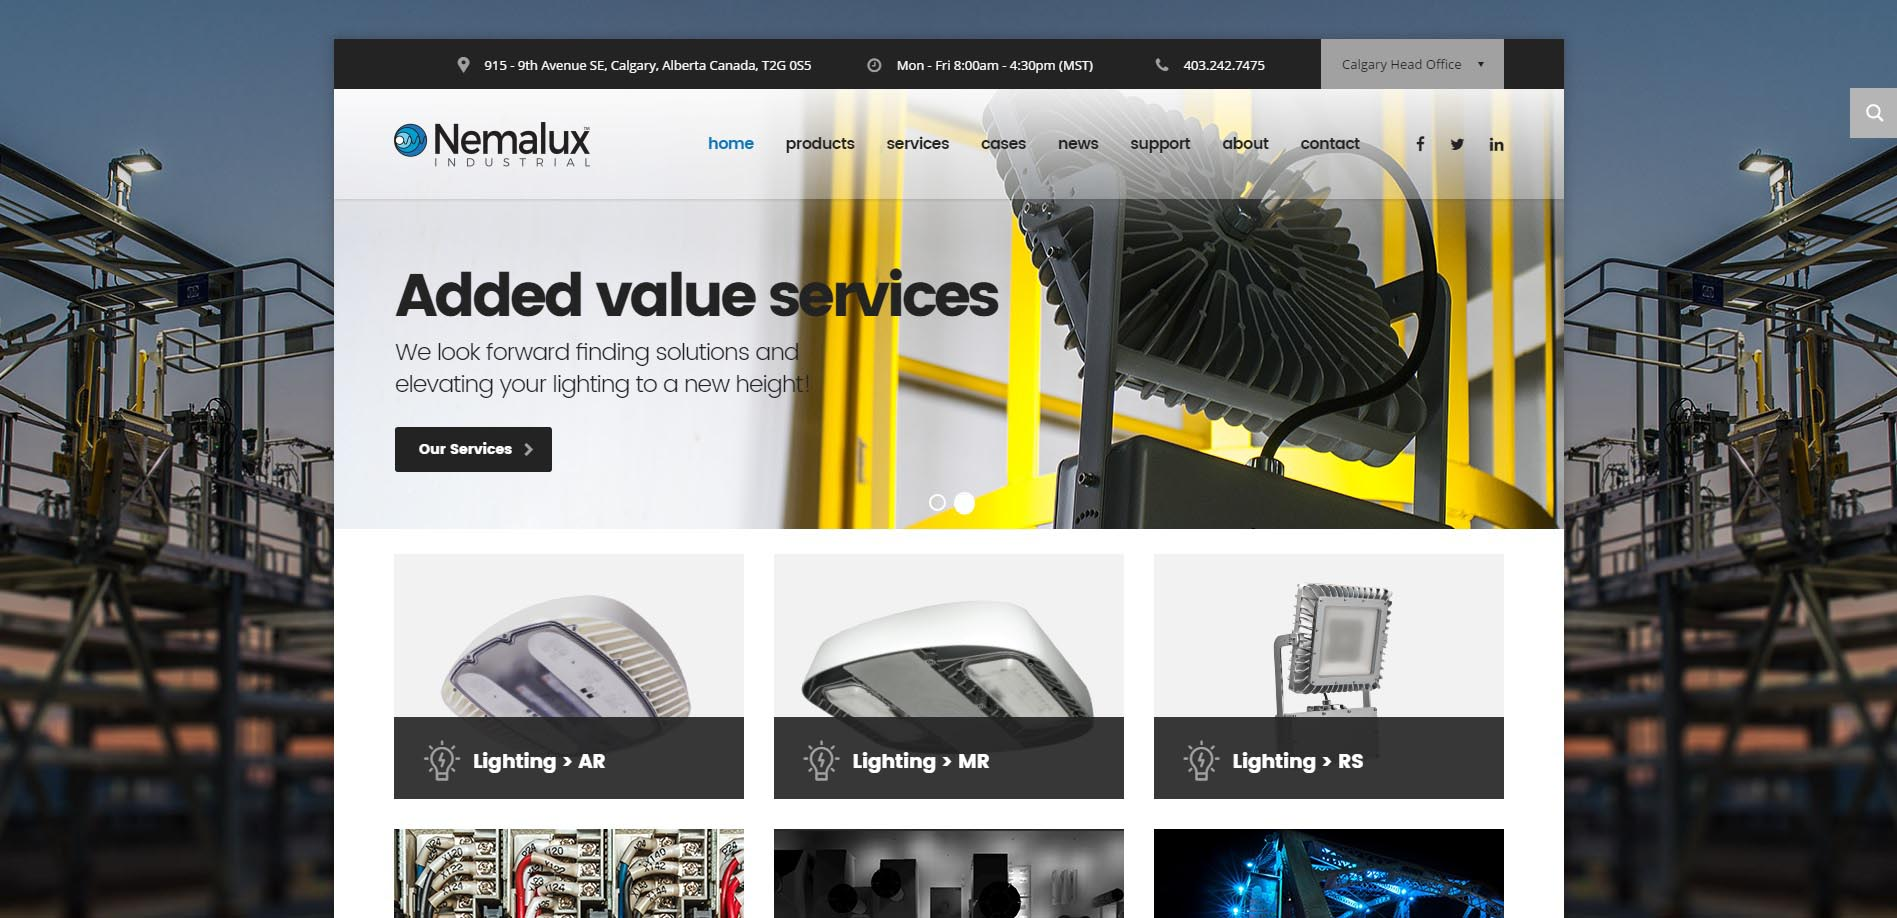 hd lighting supply calgary. introducing brand new nemalux industrial website hd lighting supply calgary